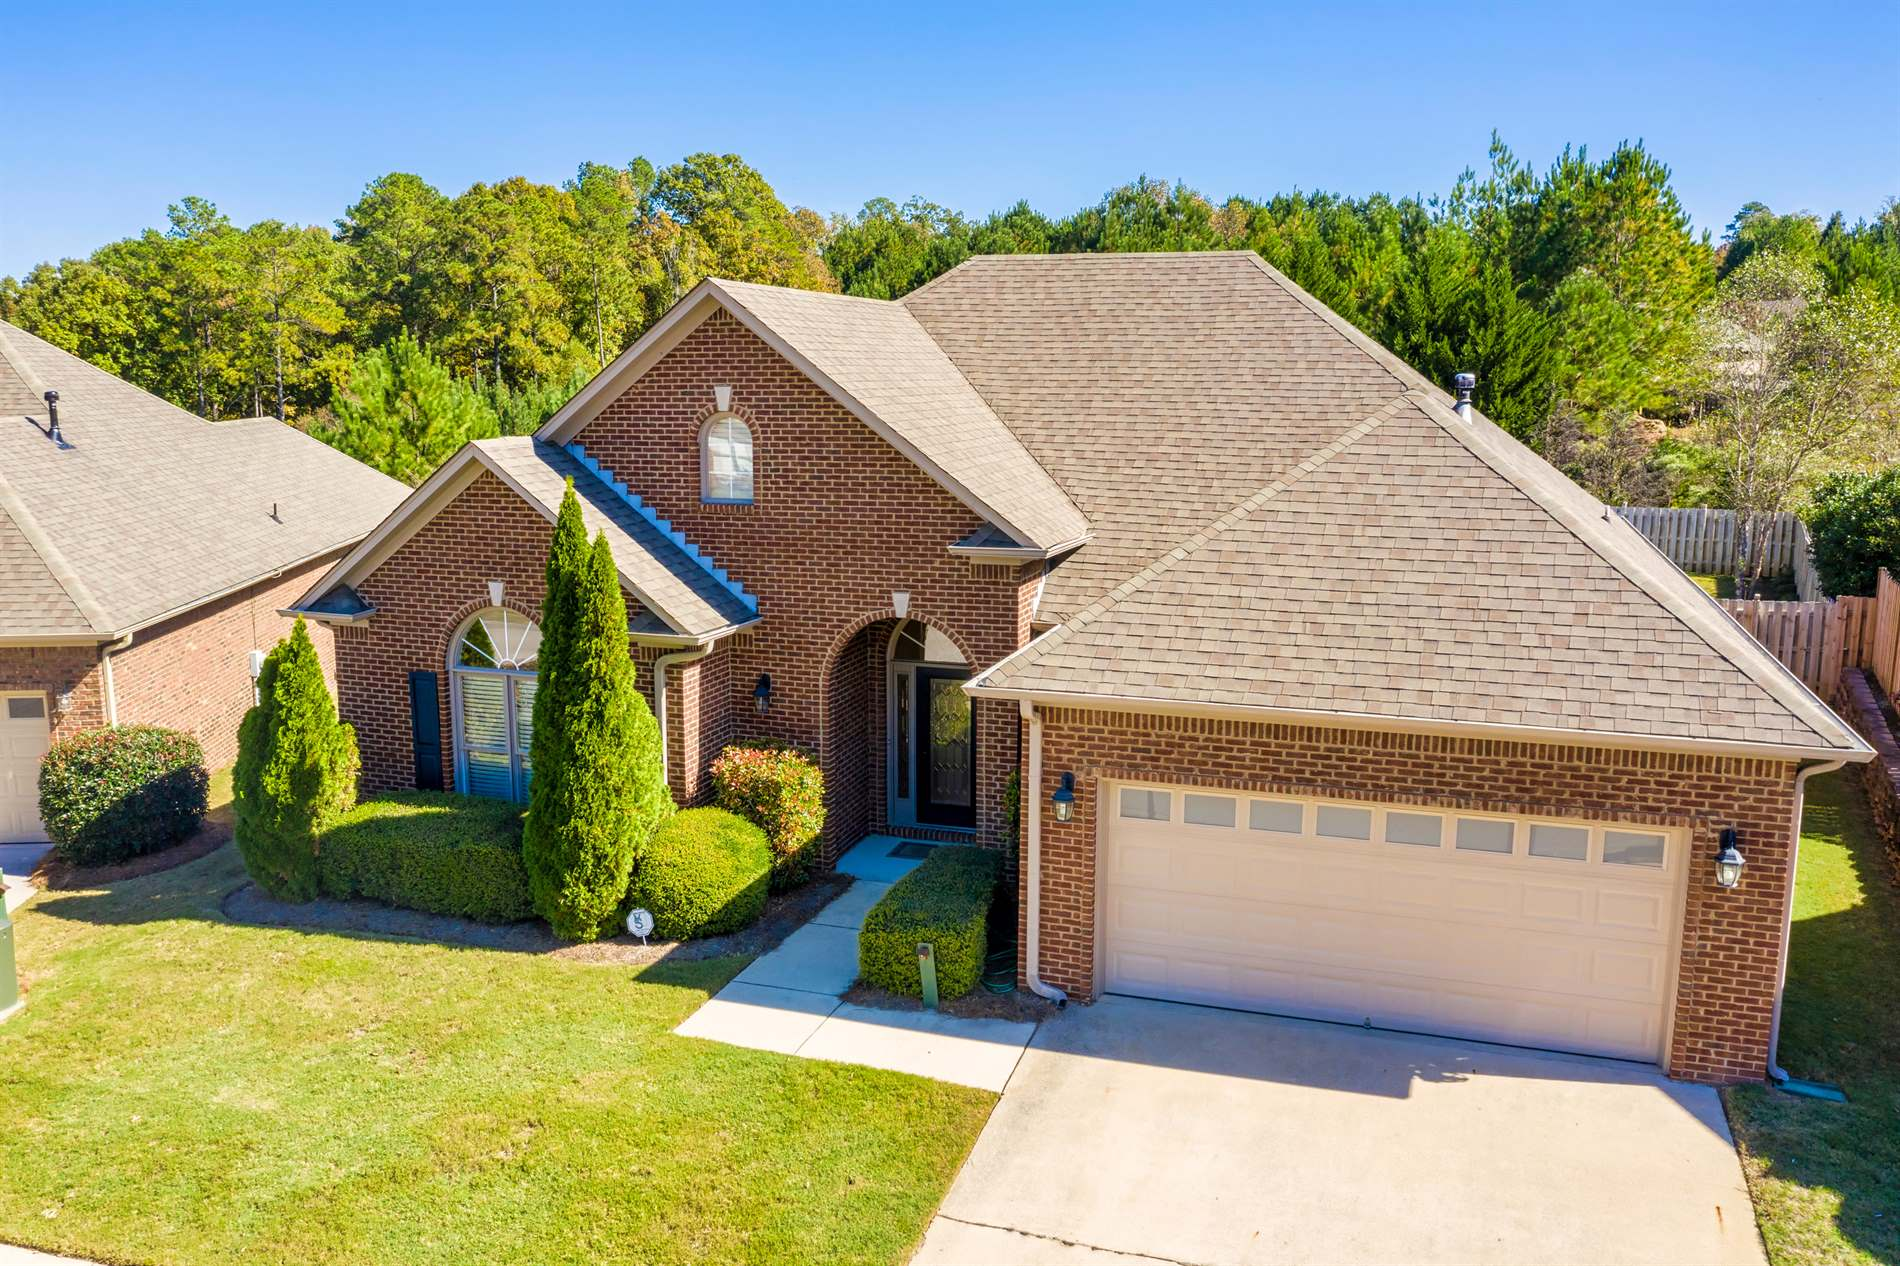 4142 Crossings Lane, Hoover, AL 35242